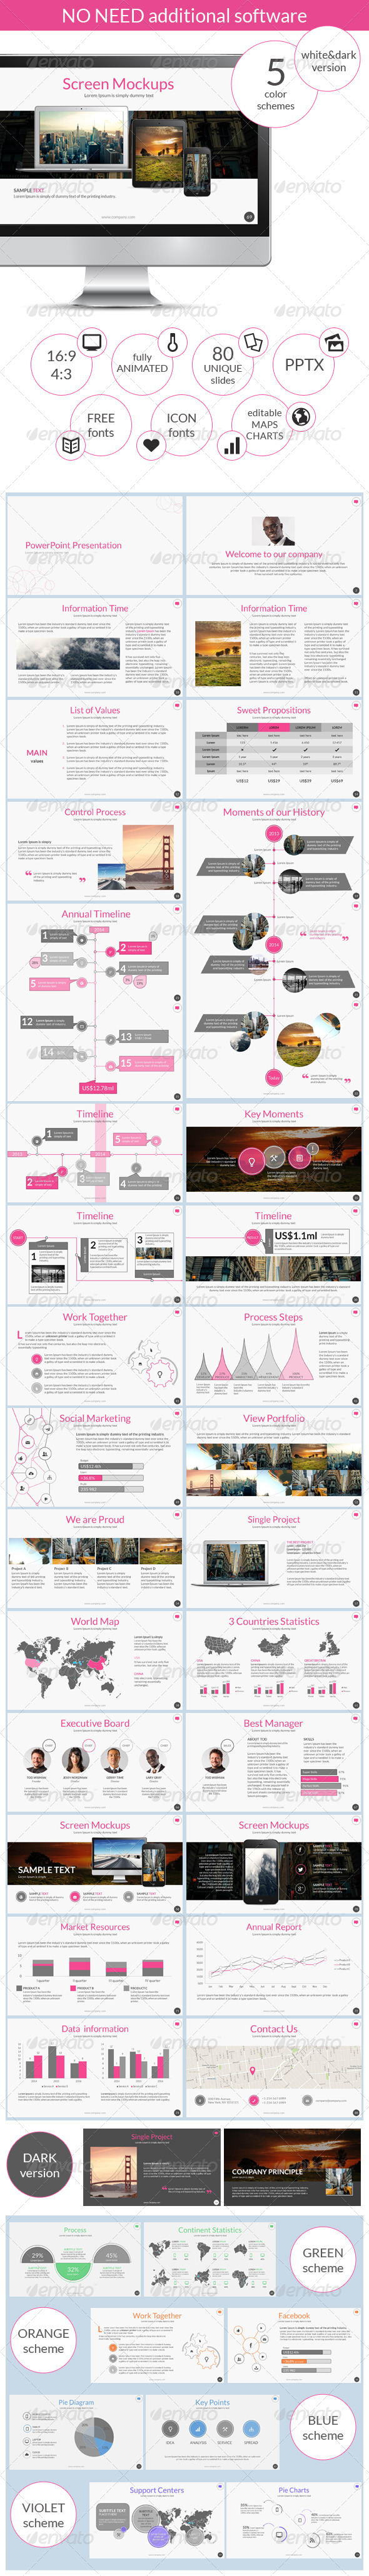 GraphicRiver Ja PowerPoint Presentation 8758449